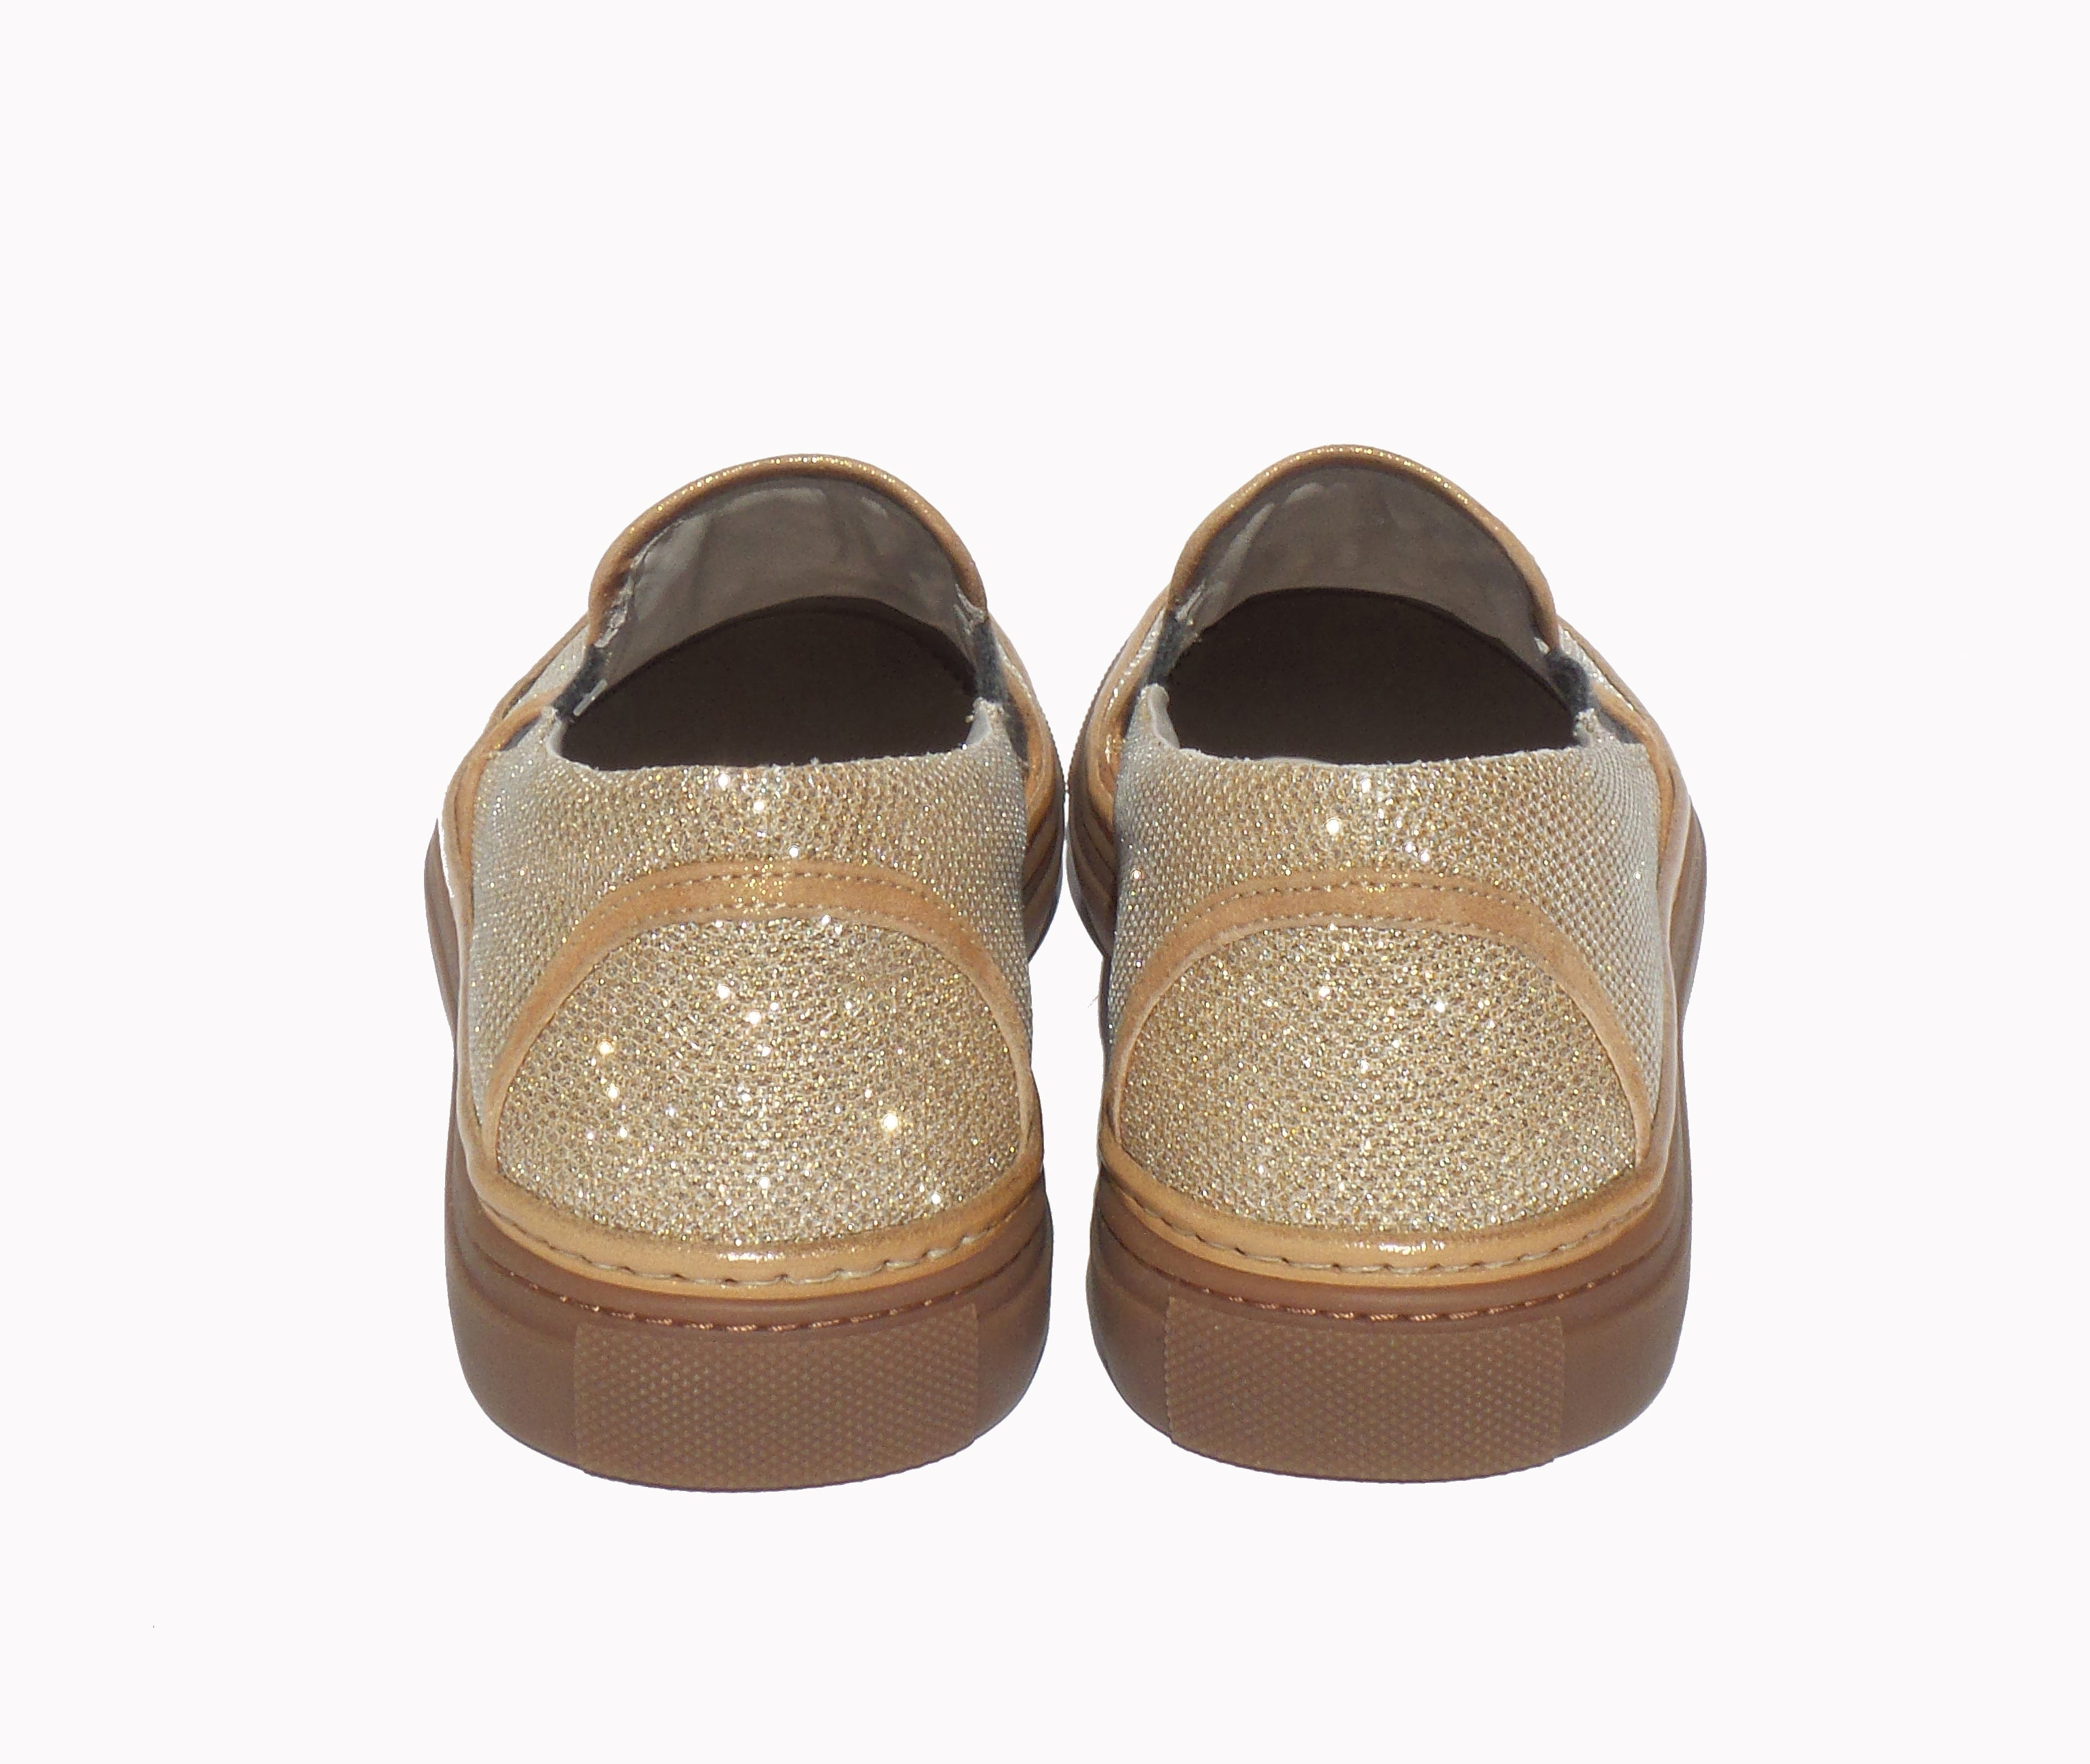 BRUNELLO CUCINELLI Metallic Glitter Gold Trim Skate Sneakers 39 EC